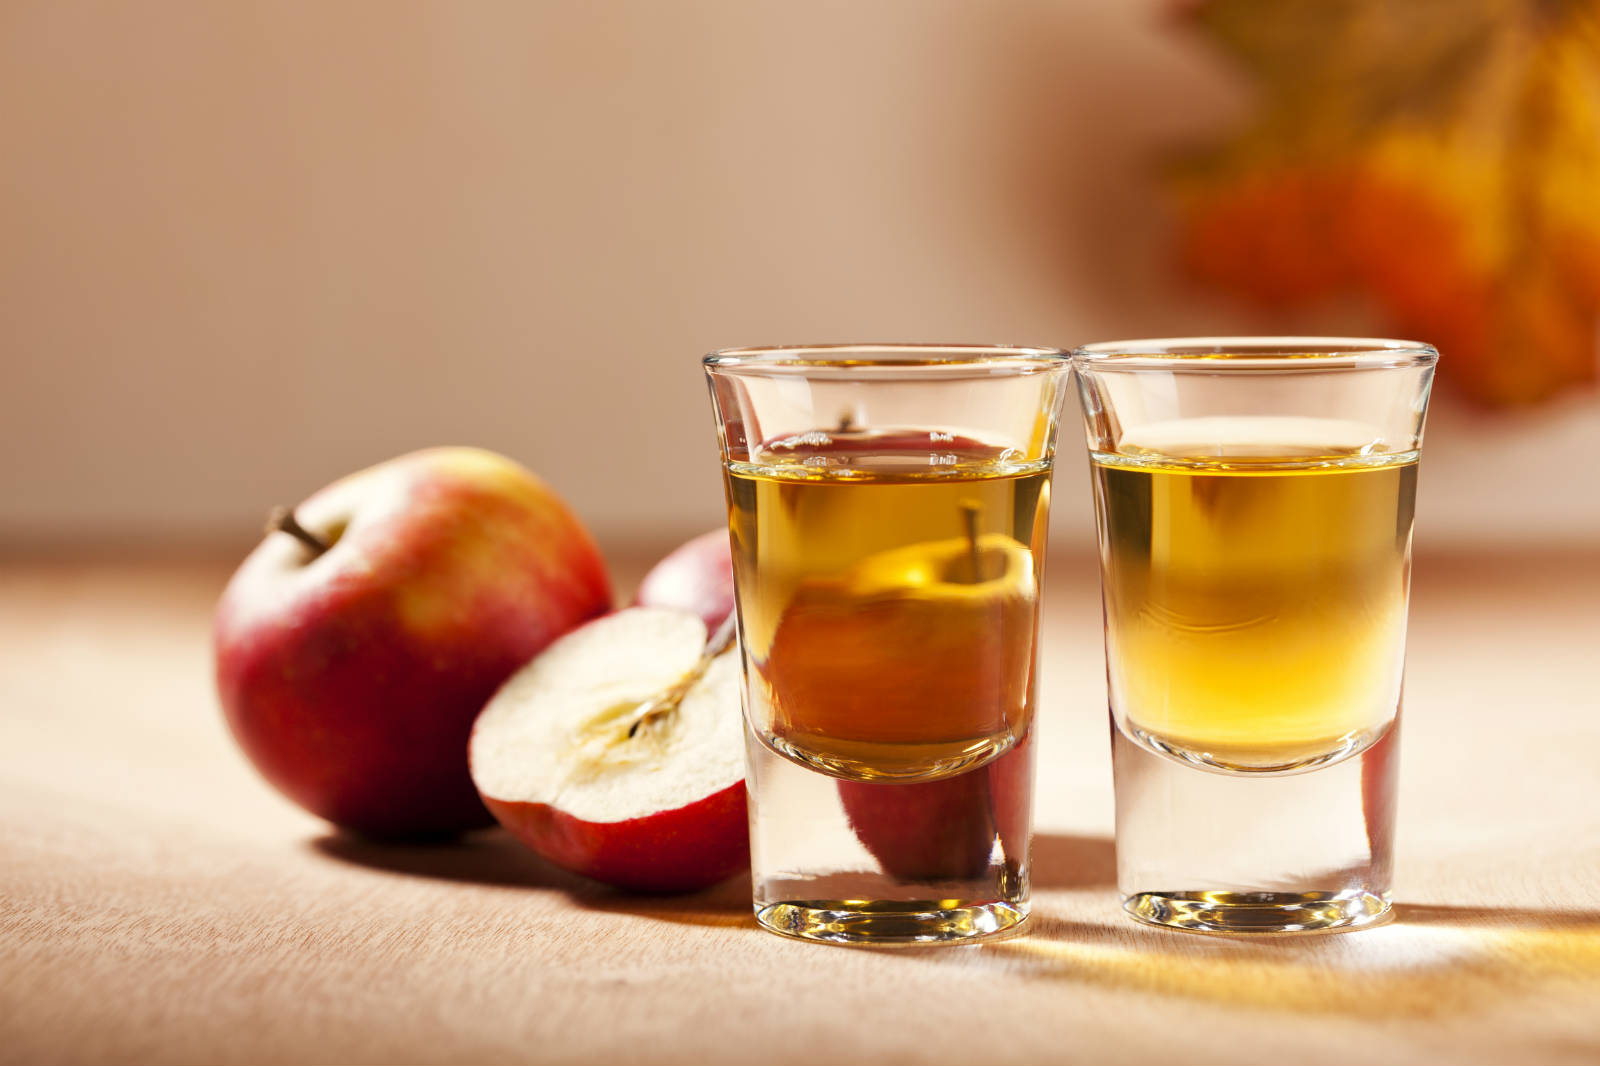 Apple cider vinegar to cure sore throat